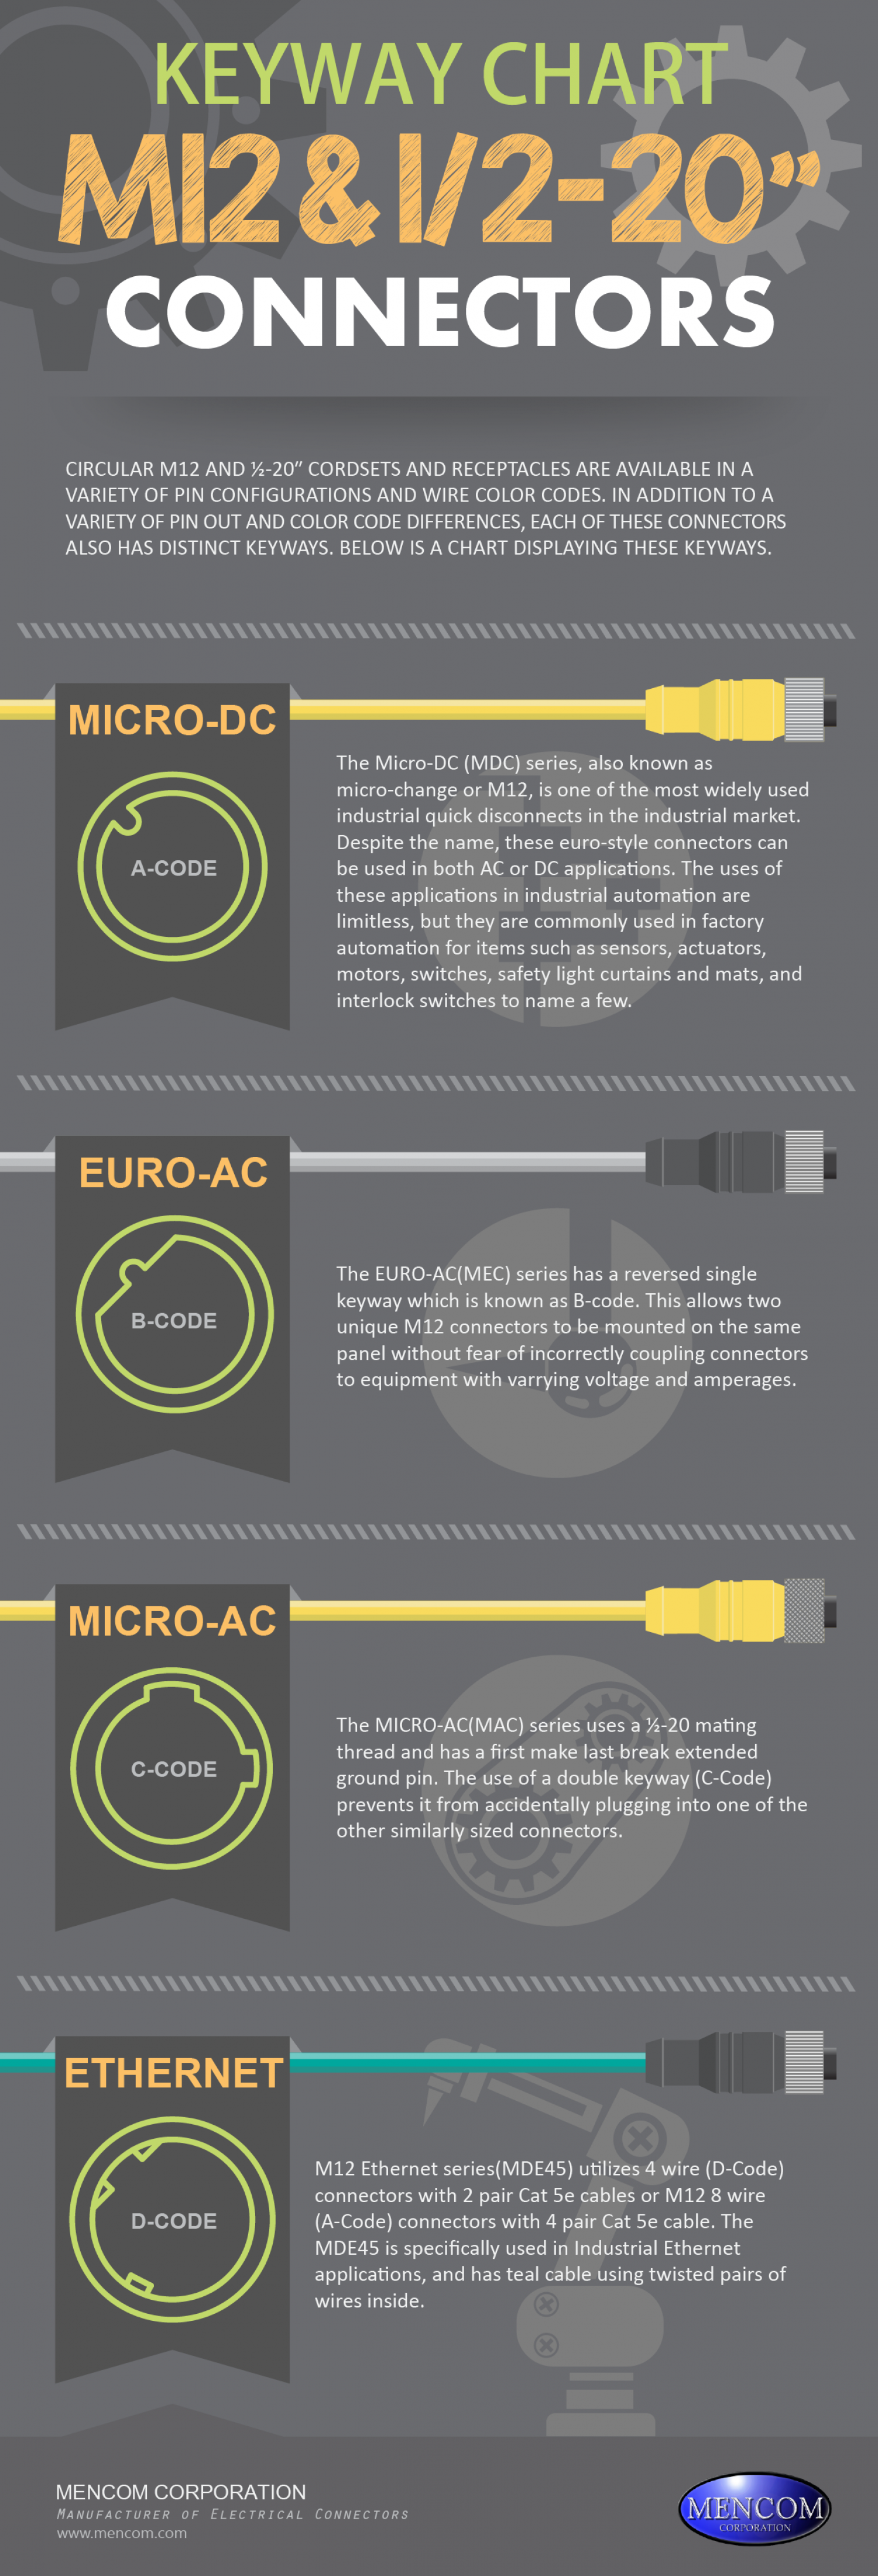 M12 12 20 connectors keyway chart visual m12 12 20 connectors keyway chart infographic nvjuhfo Image collections